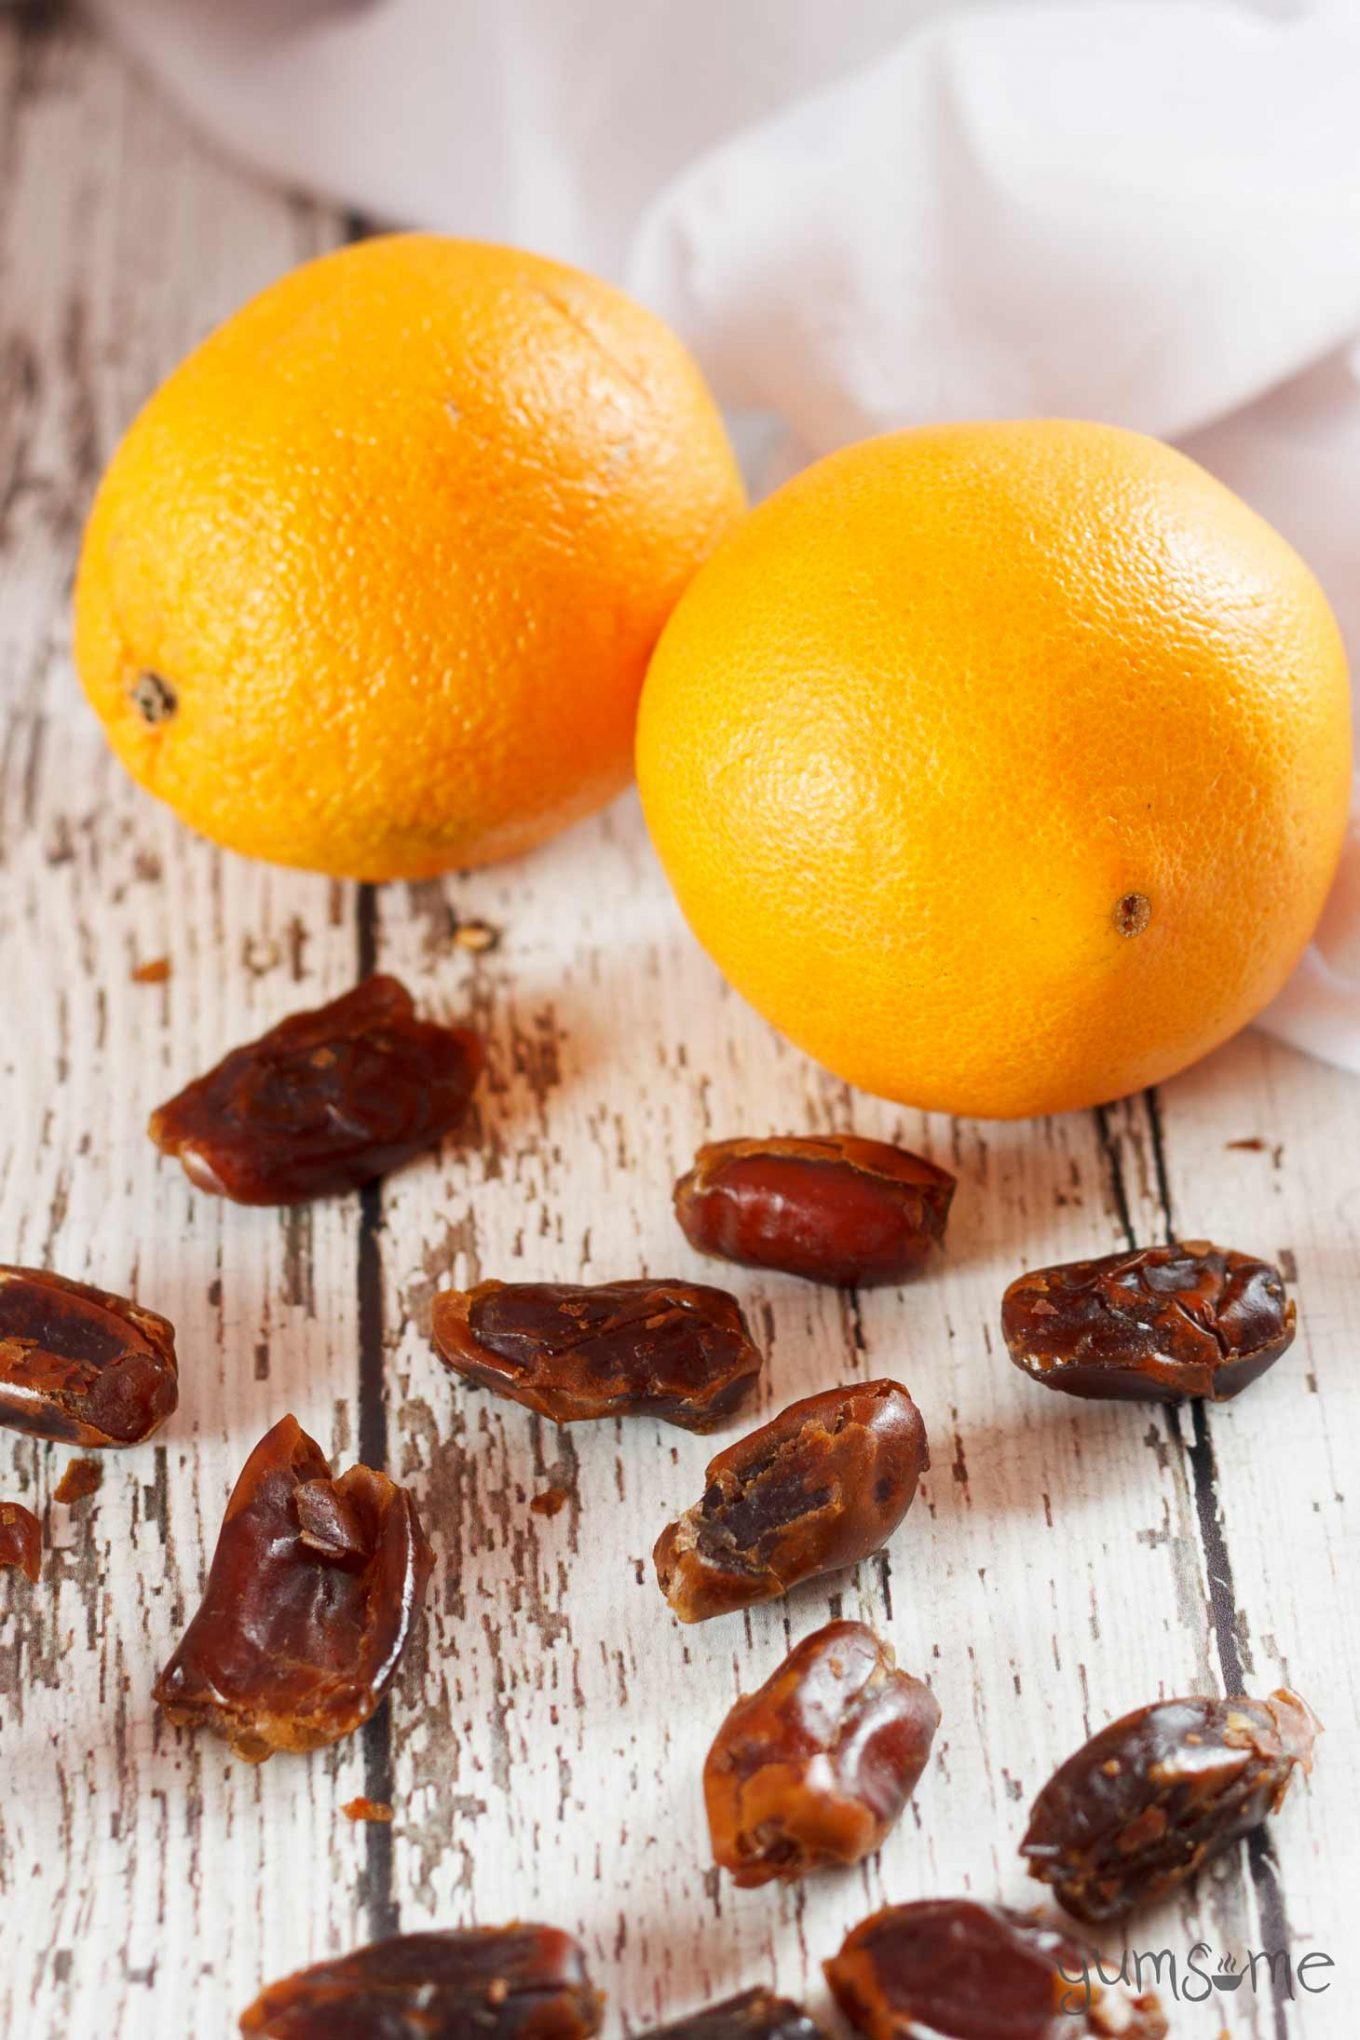 oranges and dates from Morocco | yumsome.com